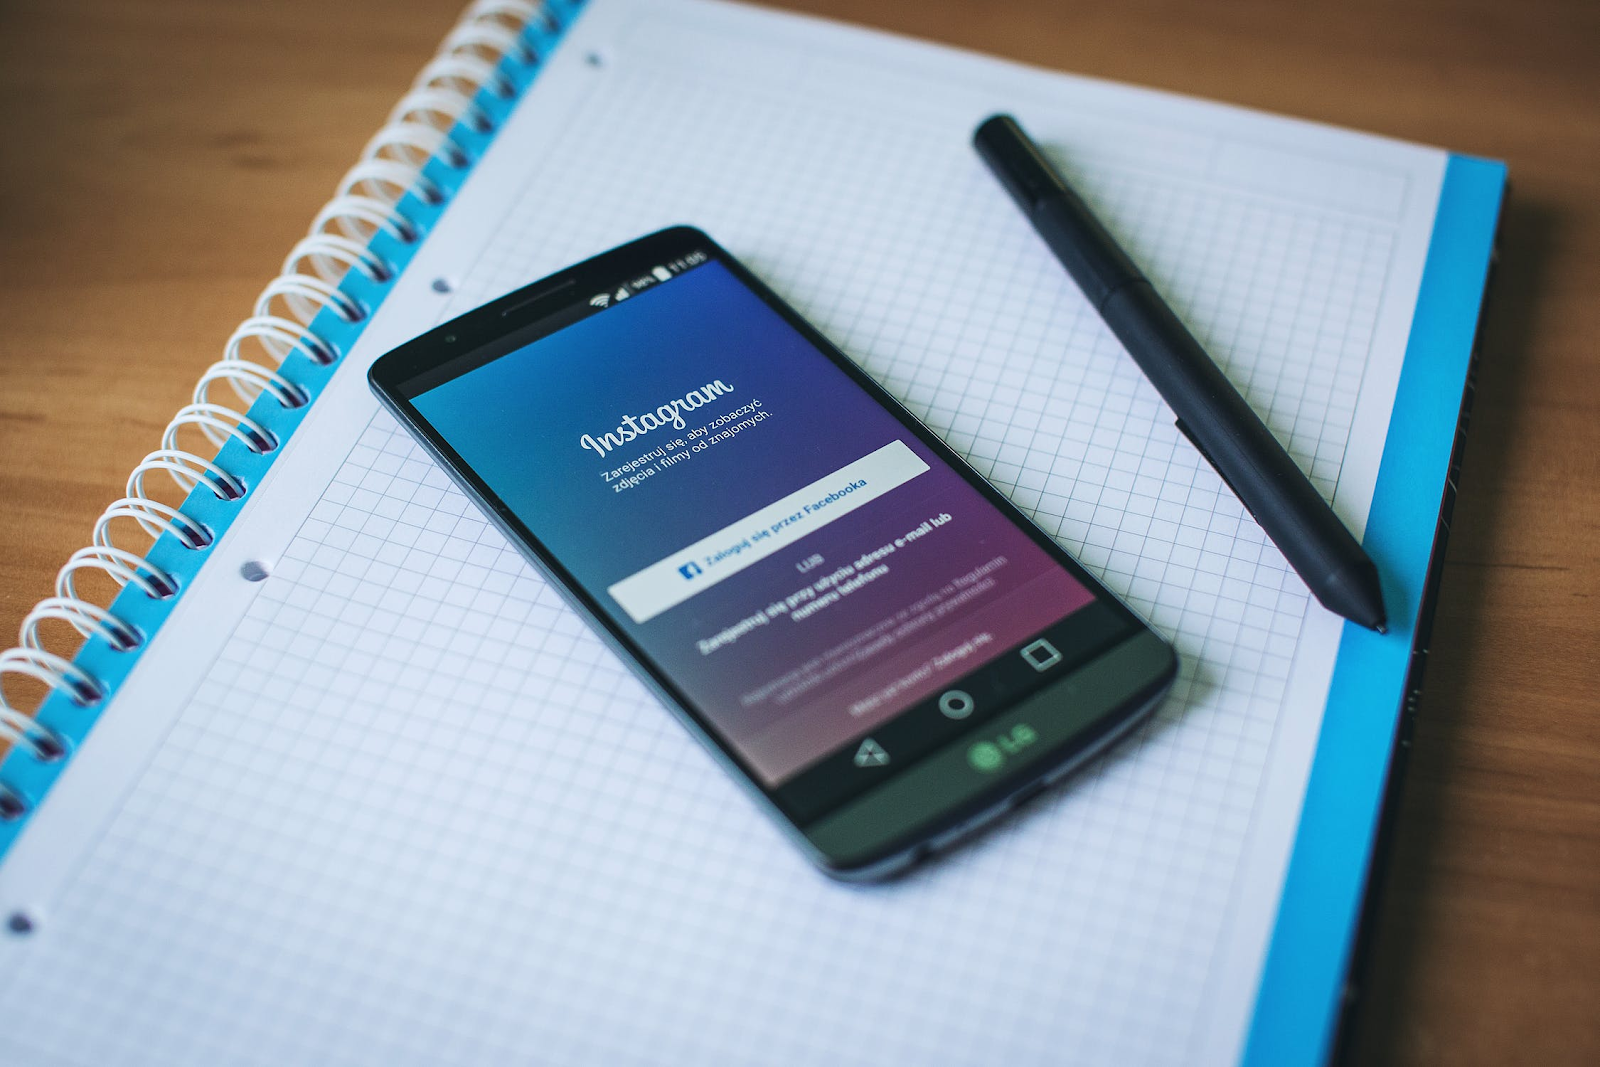 How to Use Instagram for Blog Marketing (Photo of Instagram for iPhone)